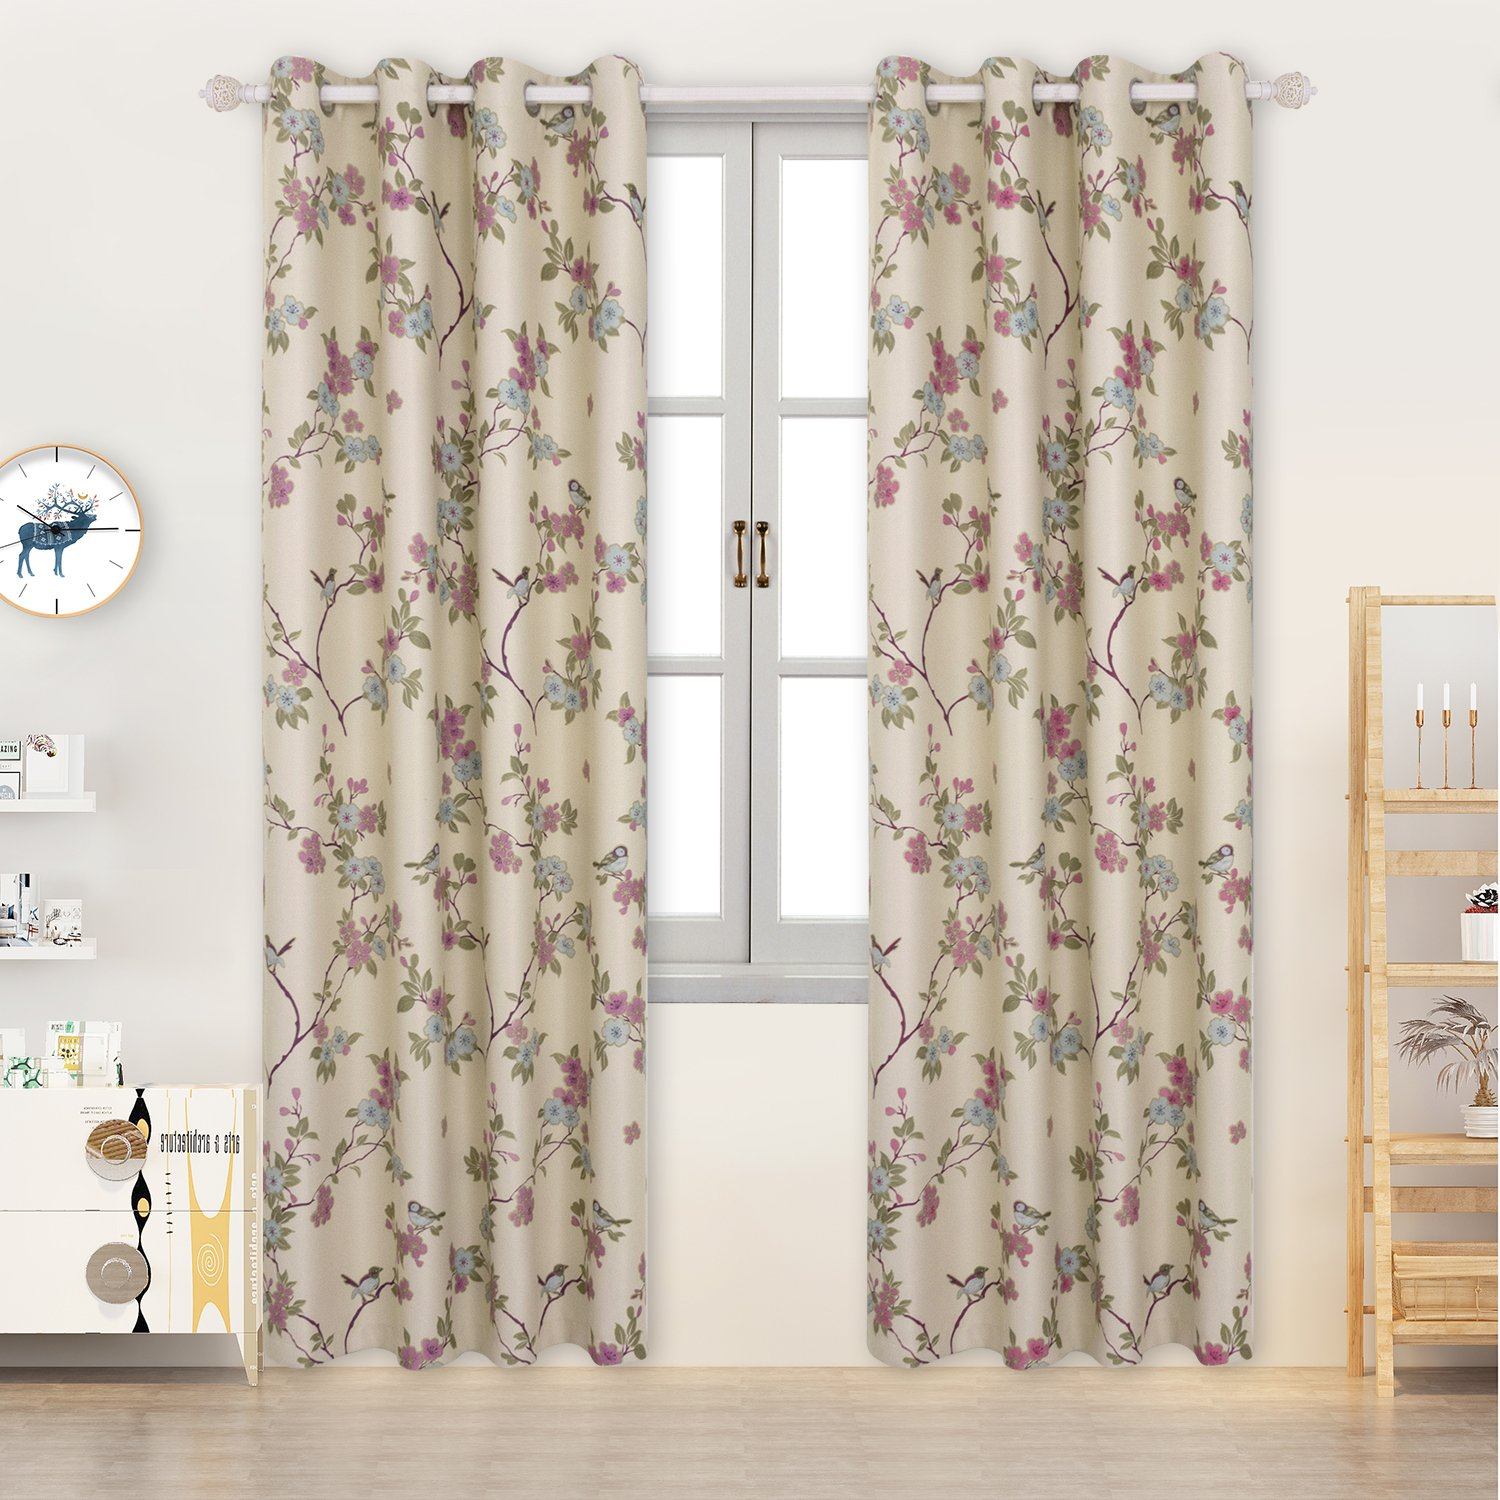 Curtains Eyelet countryside style 2 panels Room Darkening print Oriental Lucky Birds and flowers patterns Vintage Floral for living room(W46'' x L54'', Beige) BGment Hometex